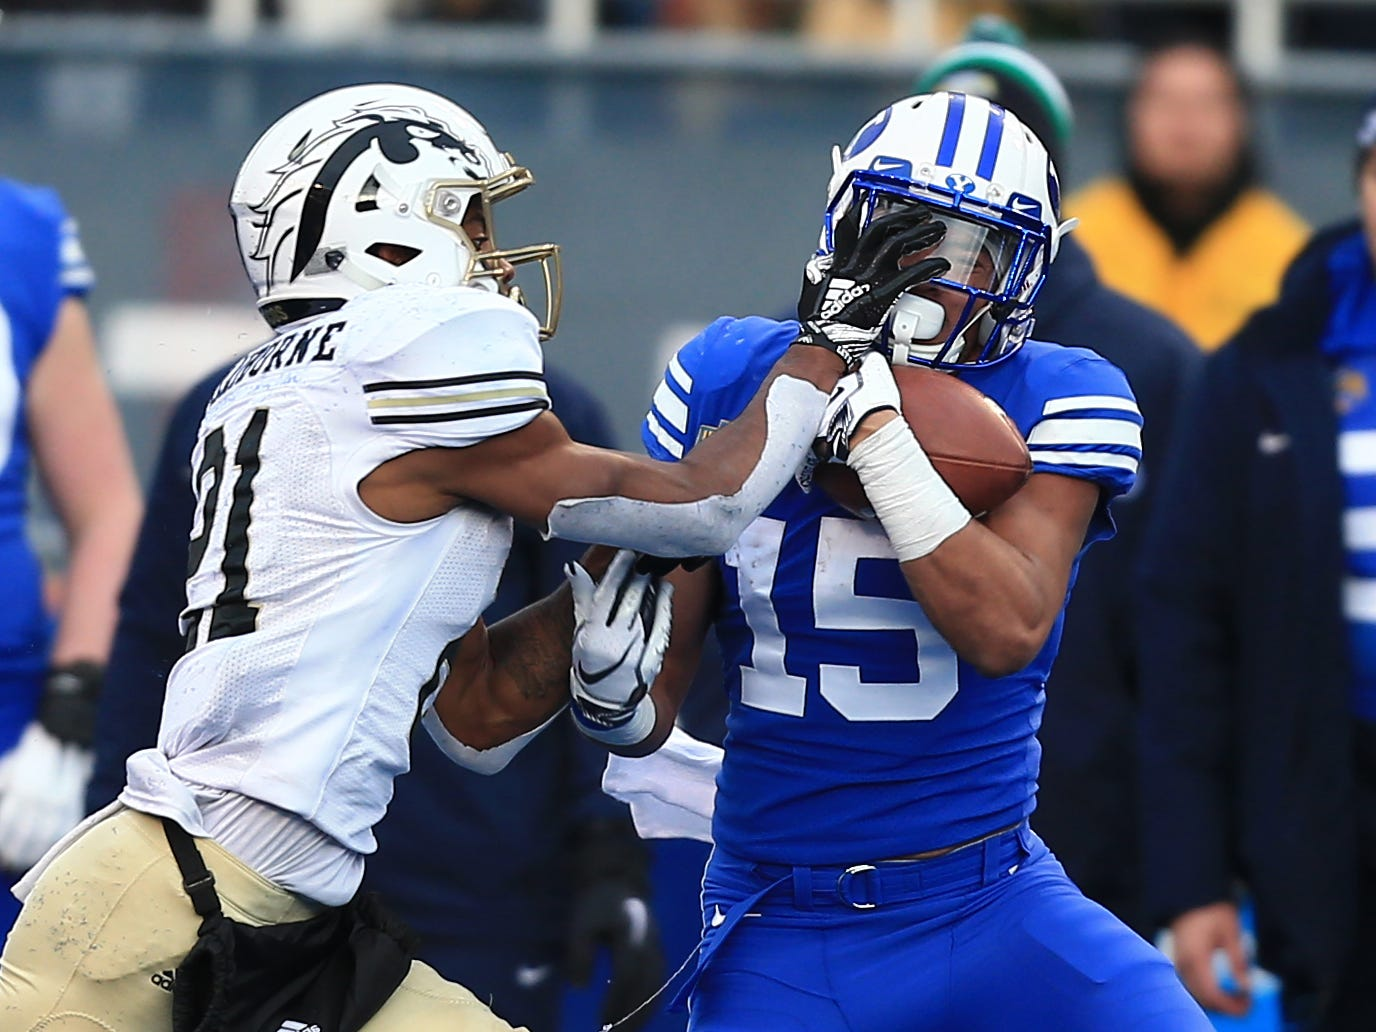 Dec 21, 2018; Boise, ID, United States; Brigham Young Cougars wide receiver Aleva Hifo (15) catches a pass against Western Michigan Broncos defensive back Stefan Claiborne (21) during the second half of the 2018 Potato Bowl at Albertsons Stadium.